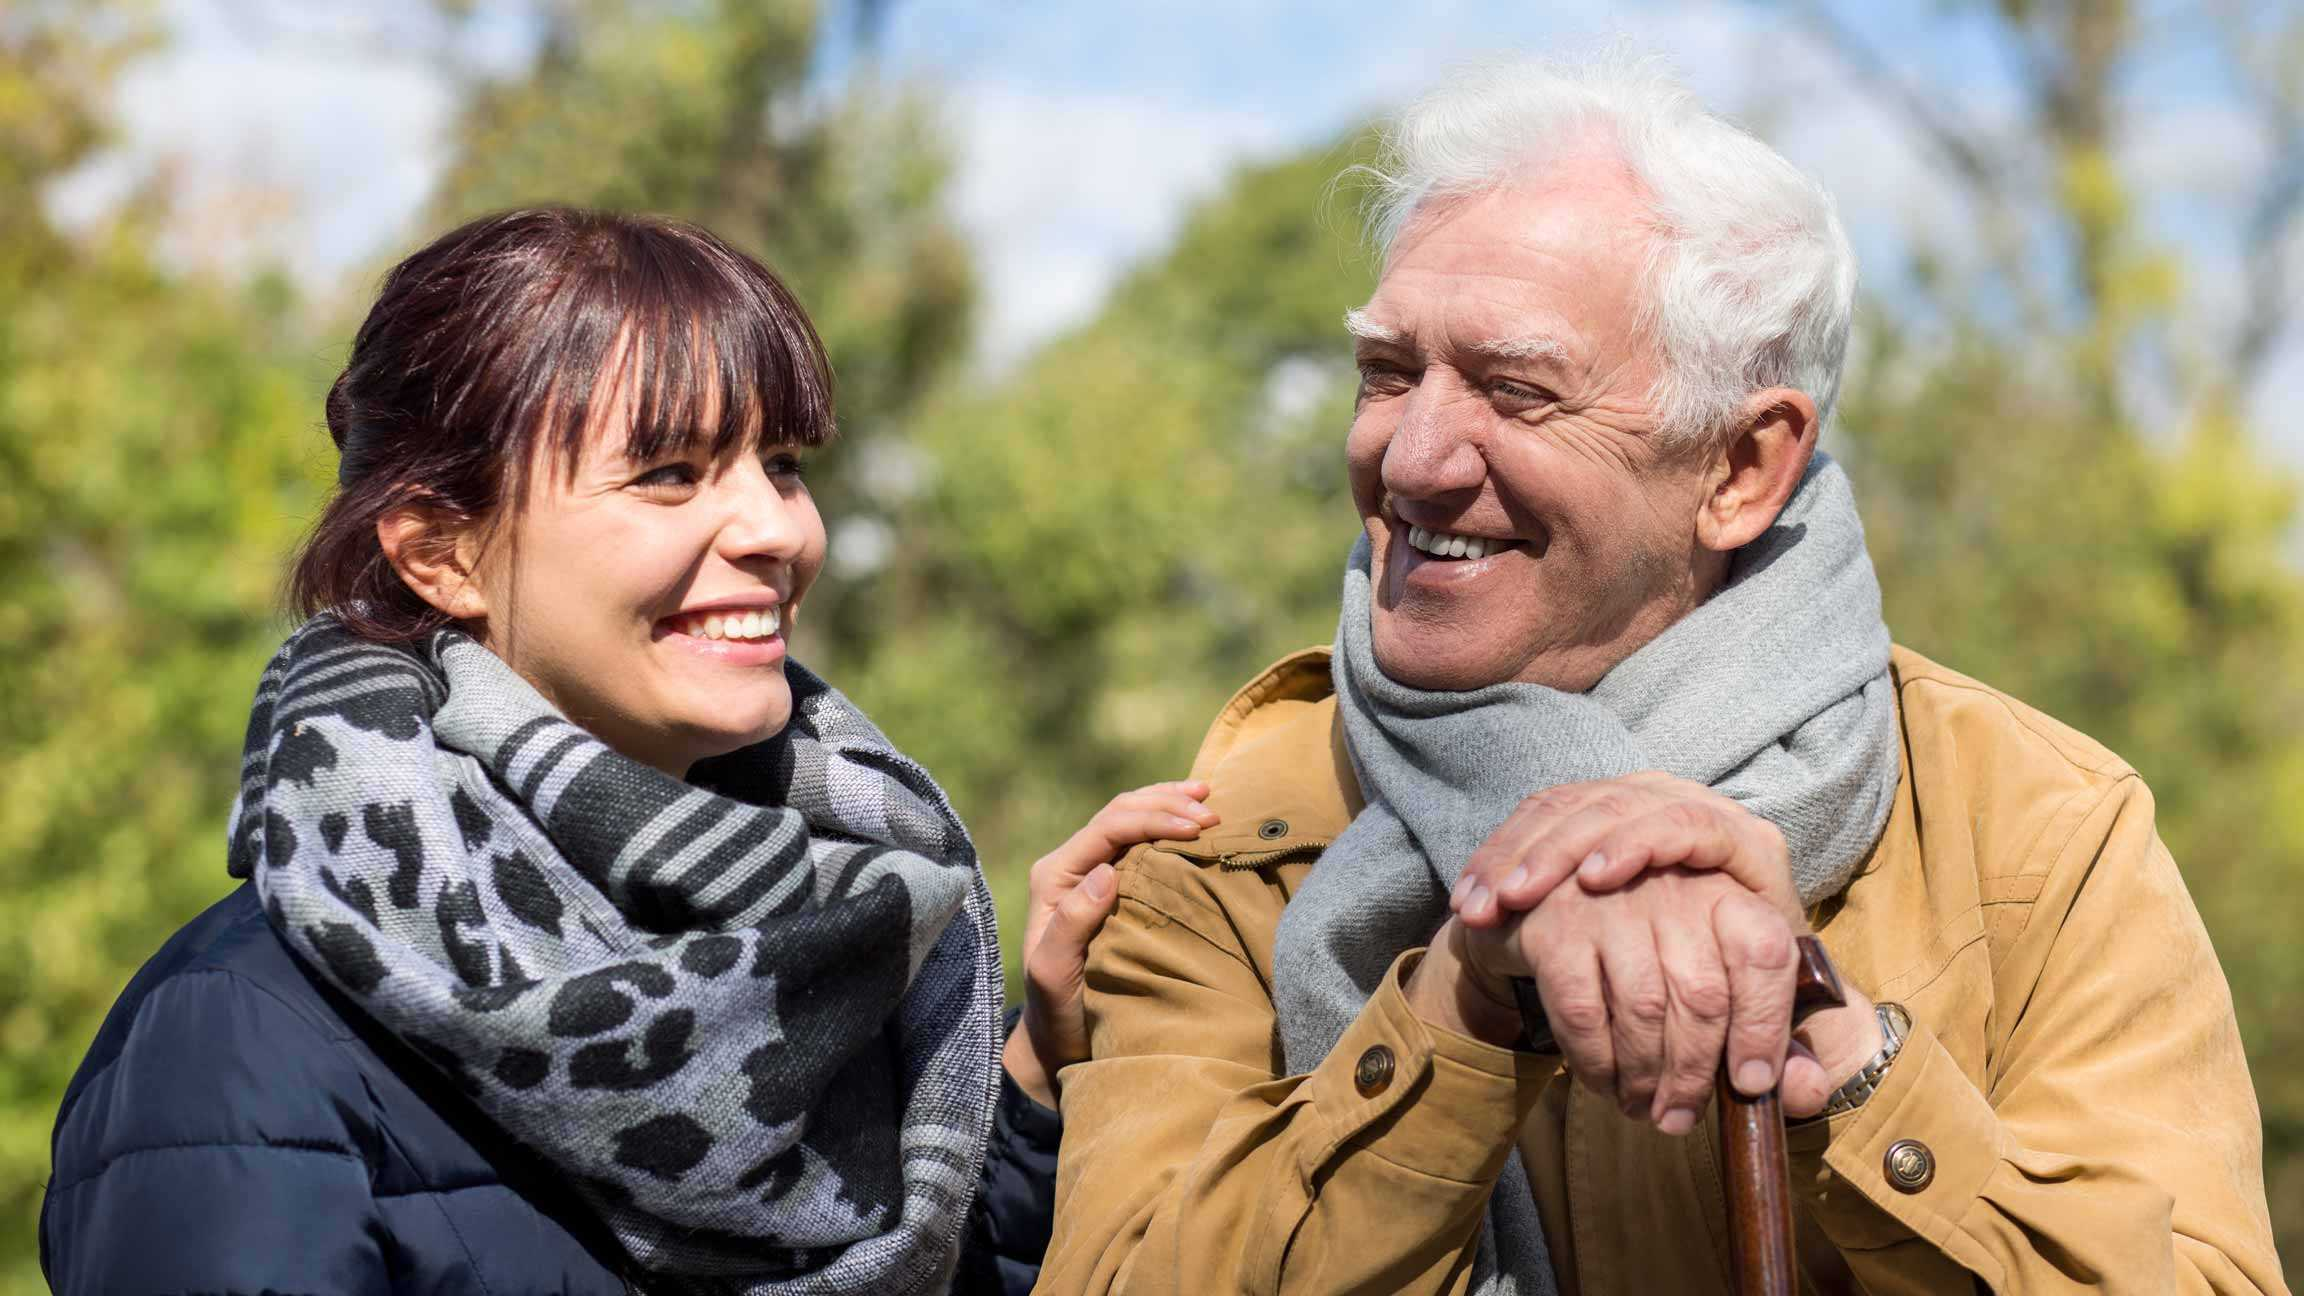 Young female care worker supporting an older man with dementia, who is smiling and has a walking stick